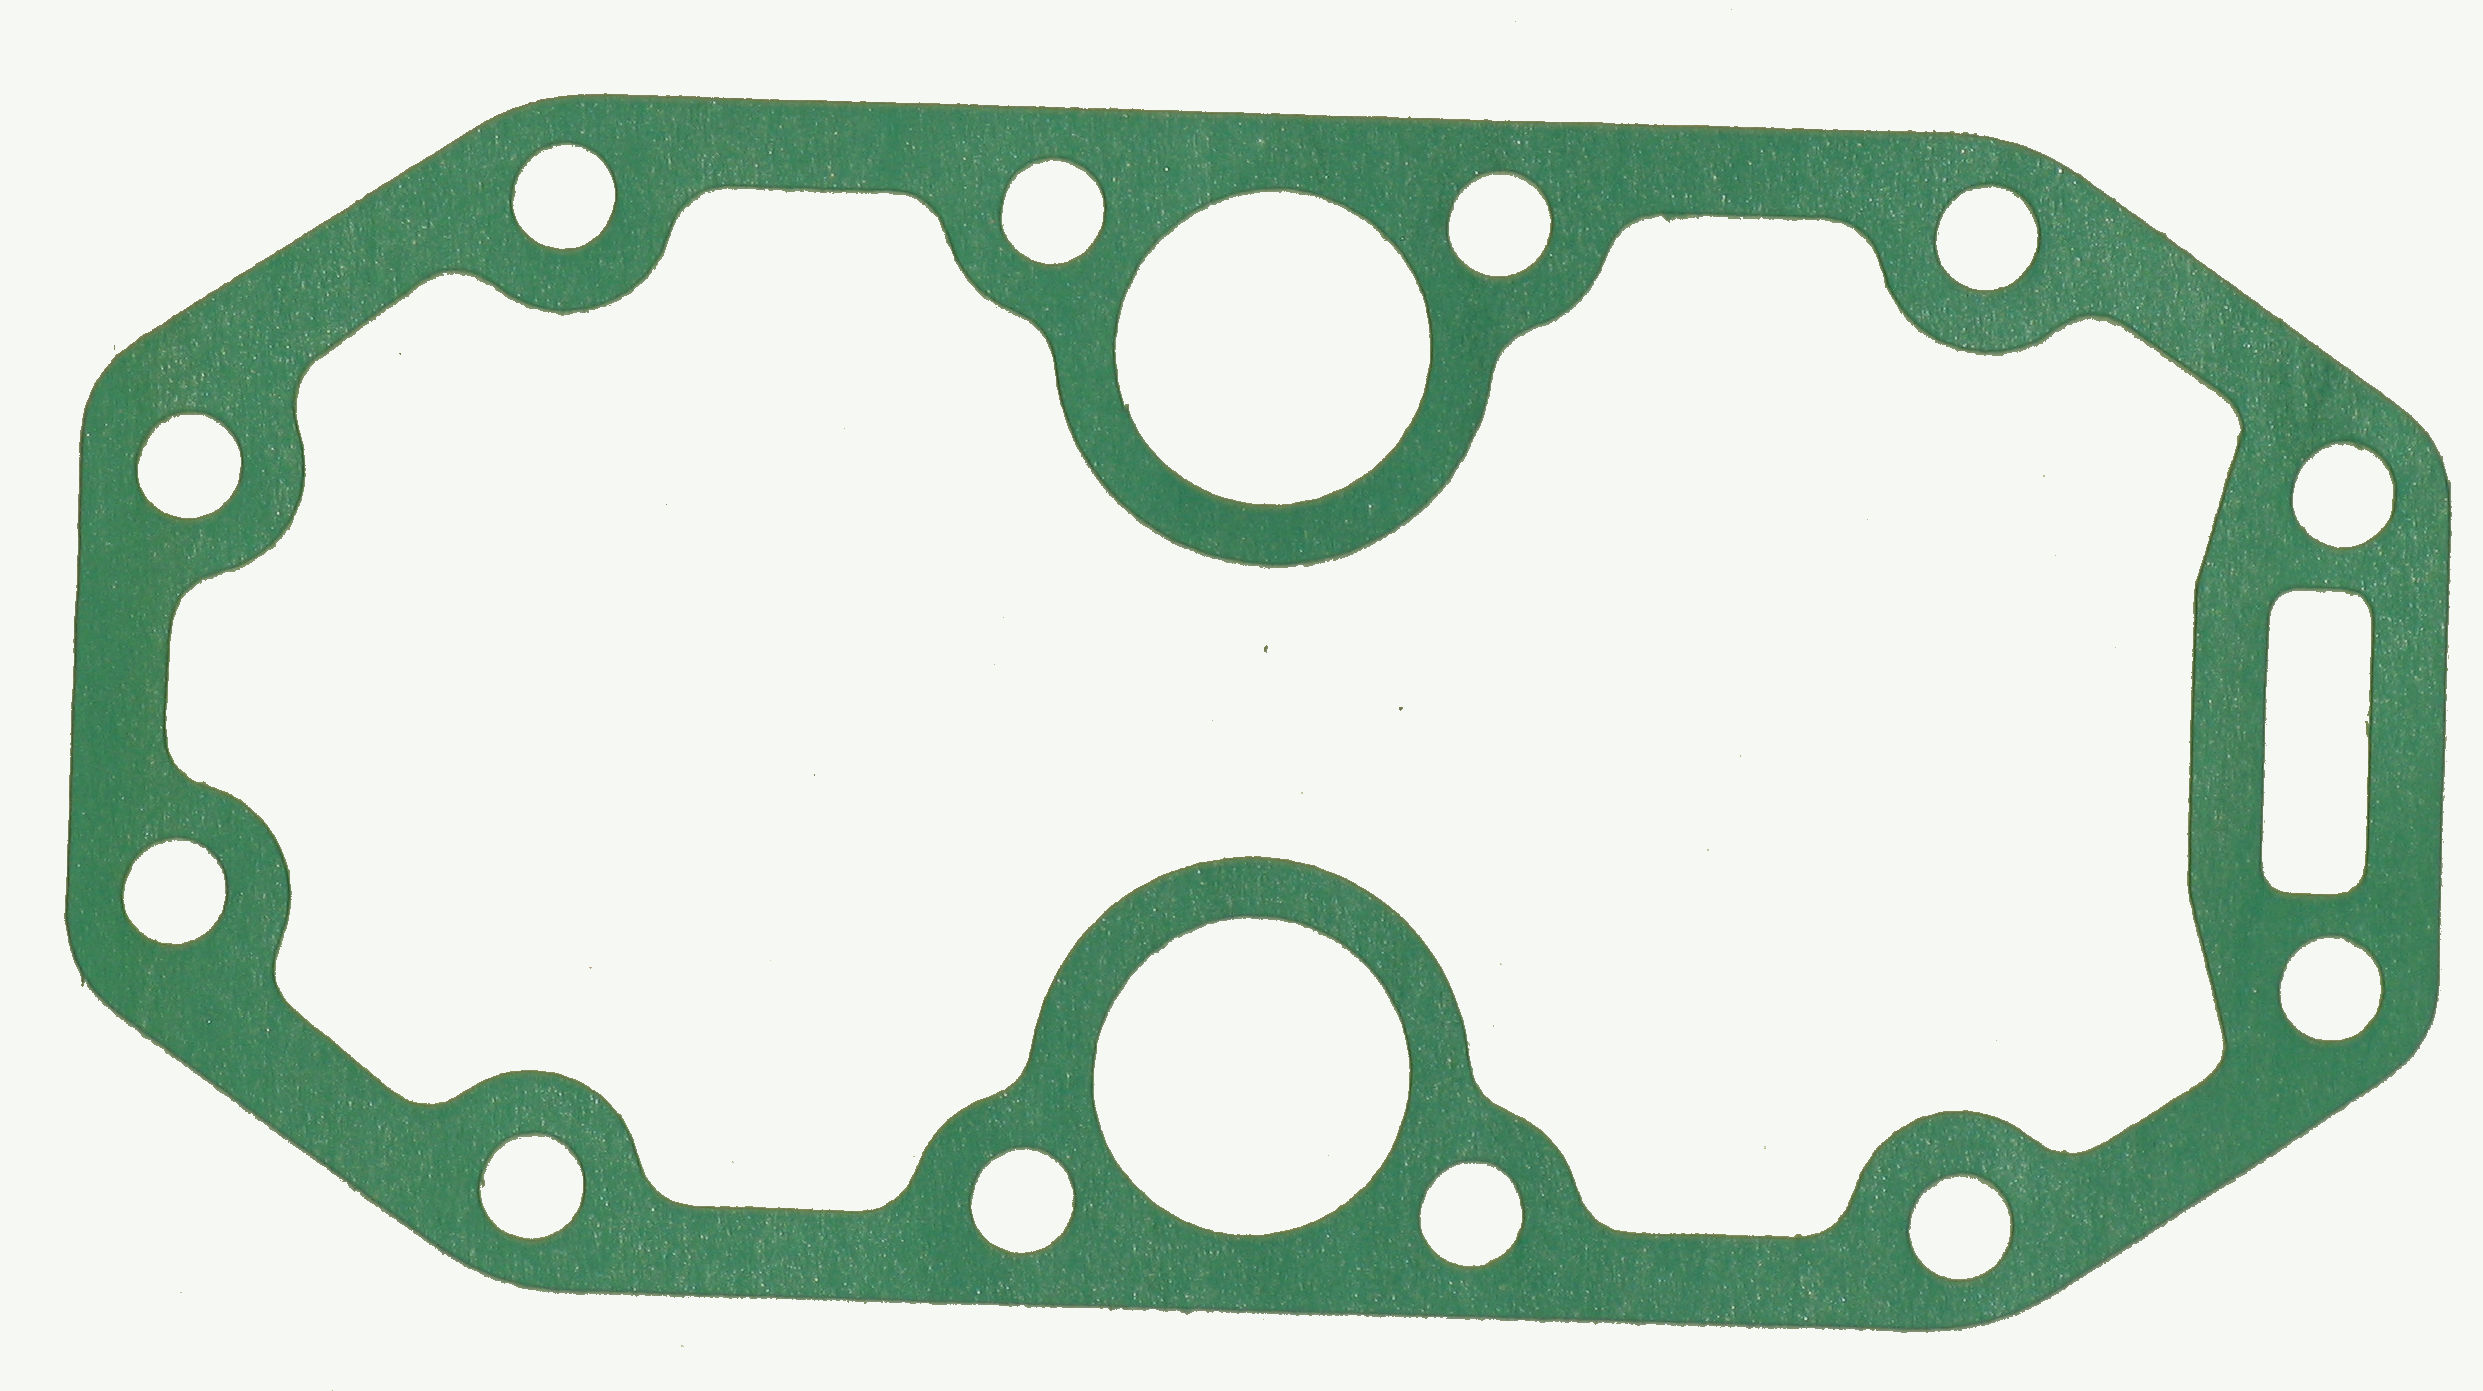 GKT-6385 Gasket; R/N GKT-922 (Made in the USA)